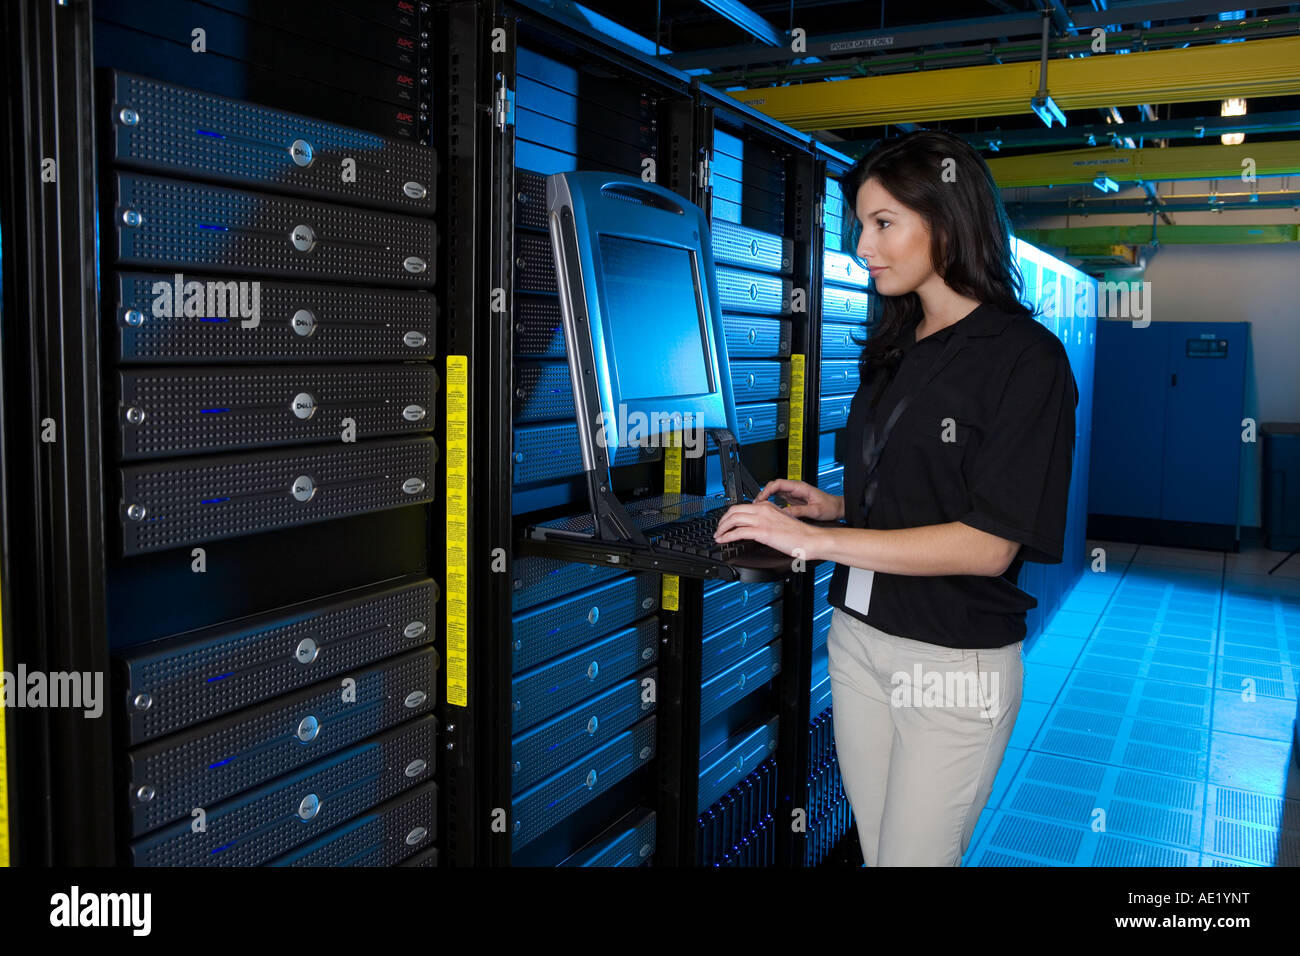 A young woman stands at a computer in a warehouse filled with servers. Stock Photo